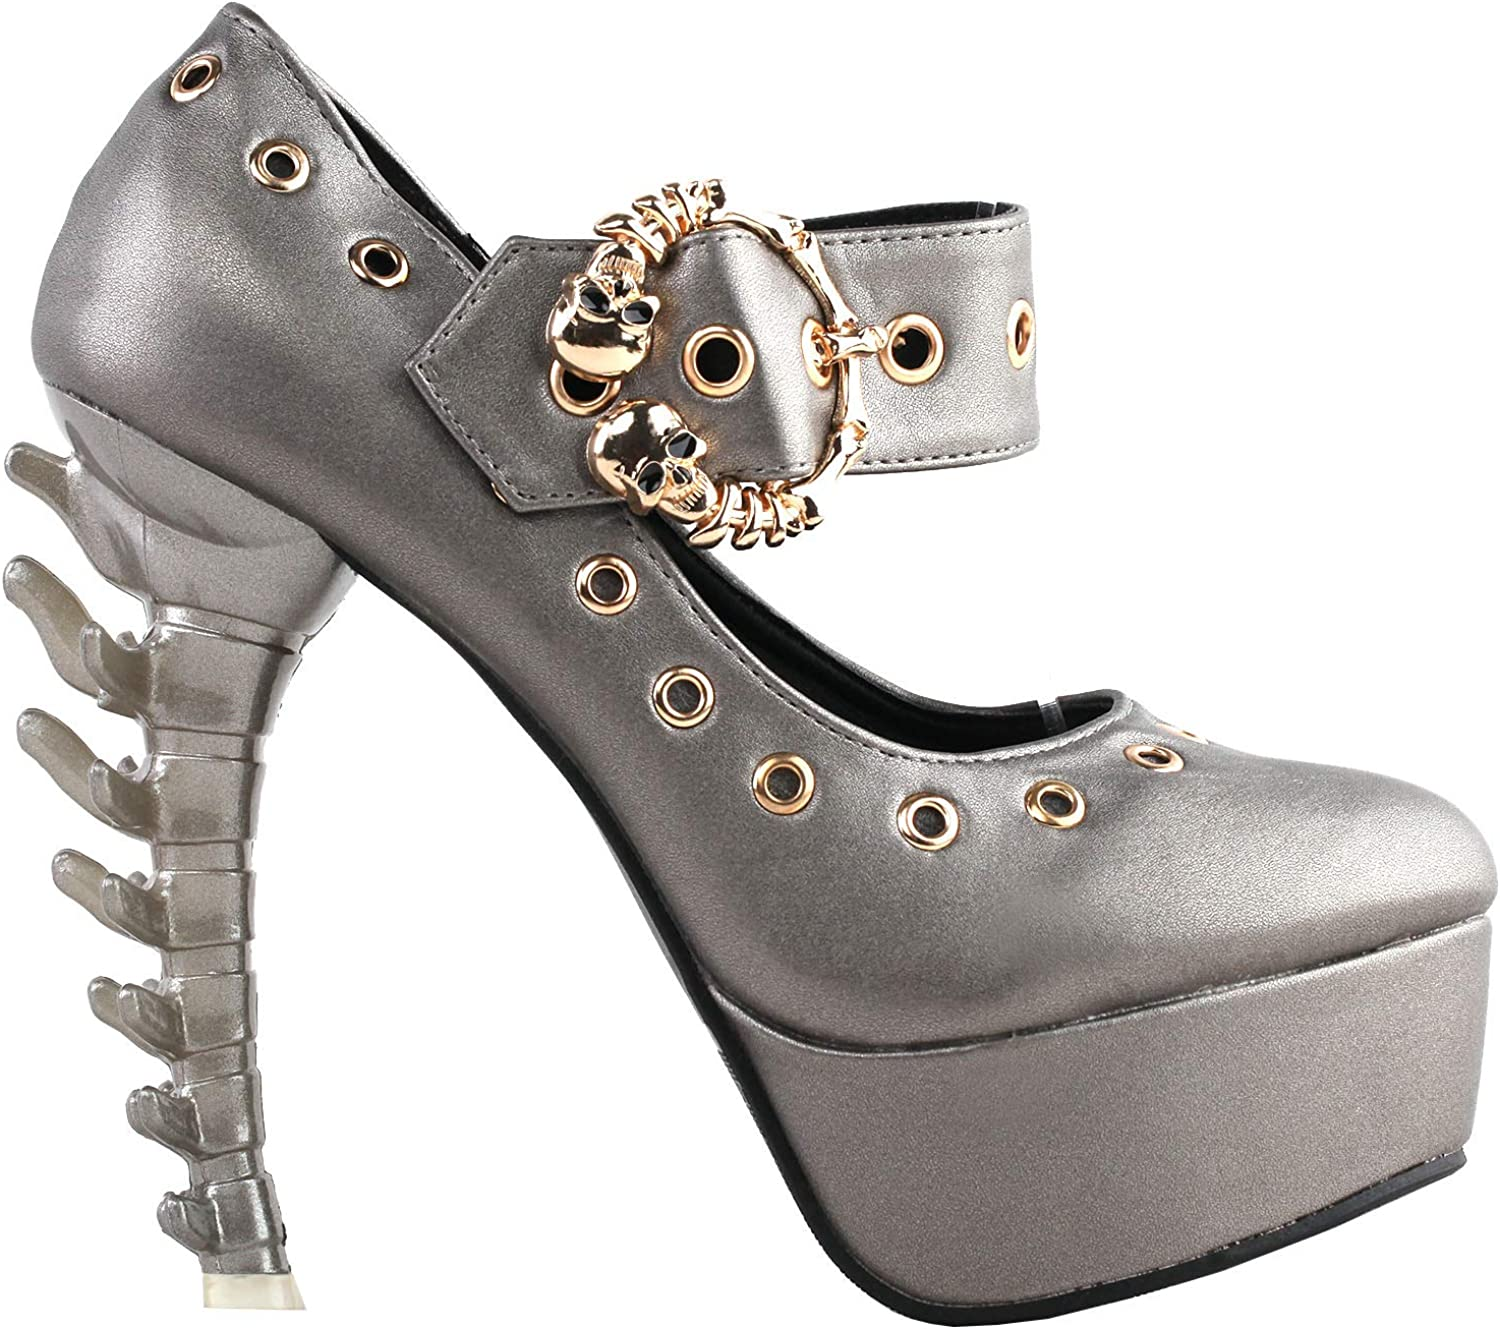 SHOW STORY Super intense SALE Punk Grey Skull Gladiator All stores are sold Mary-Jane Buckle Pla Eyelet